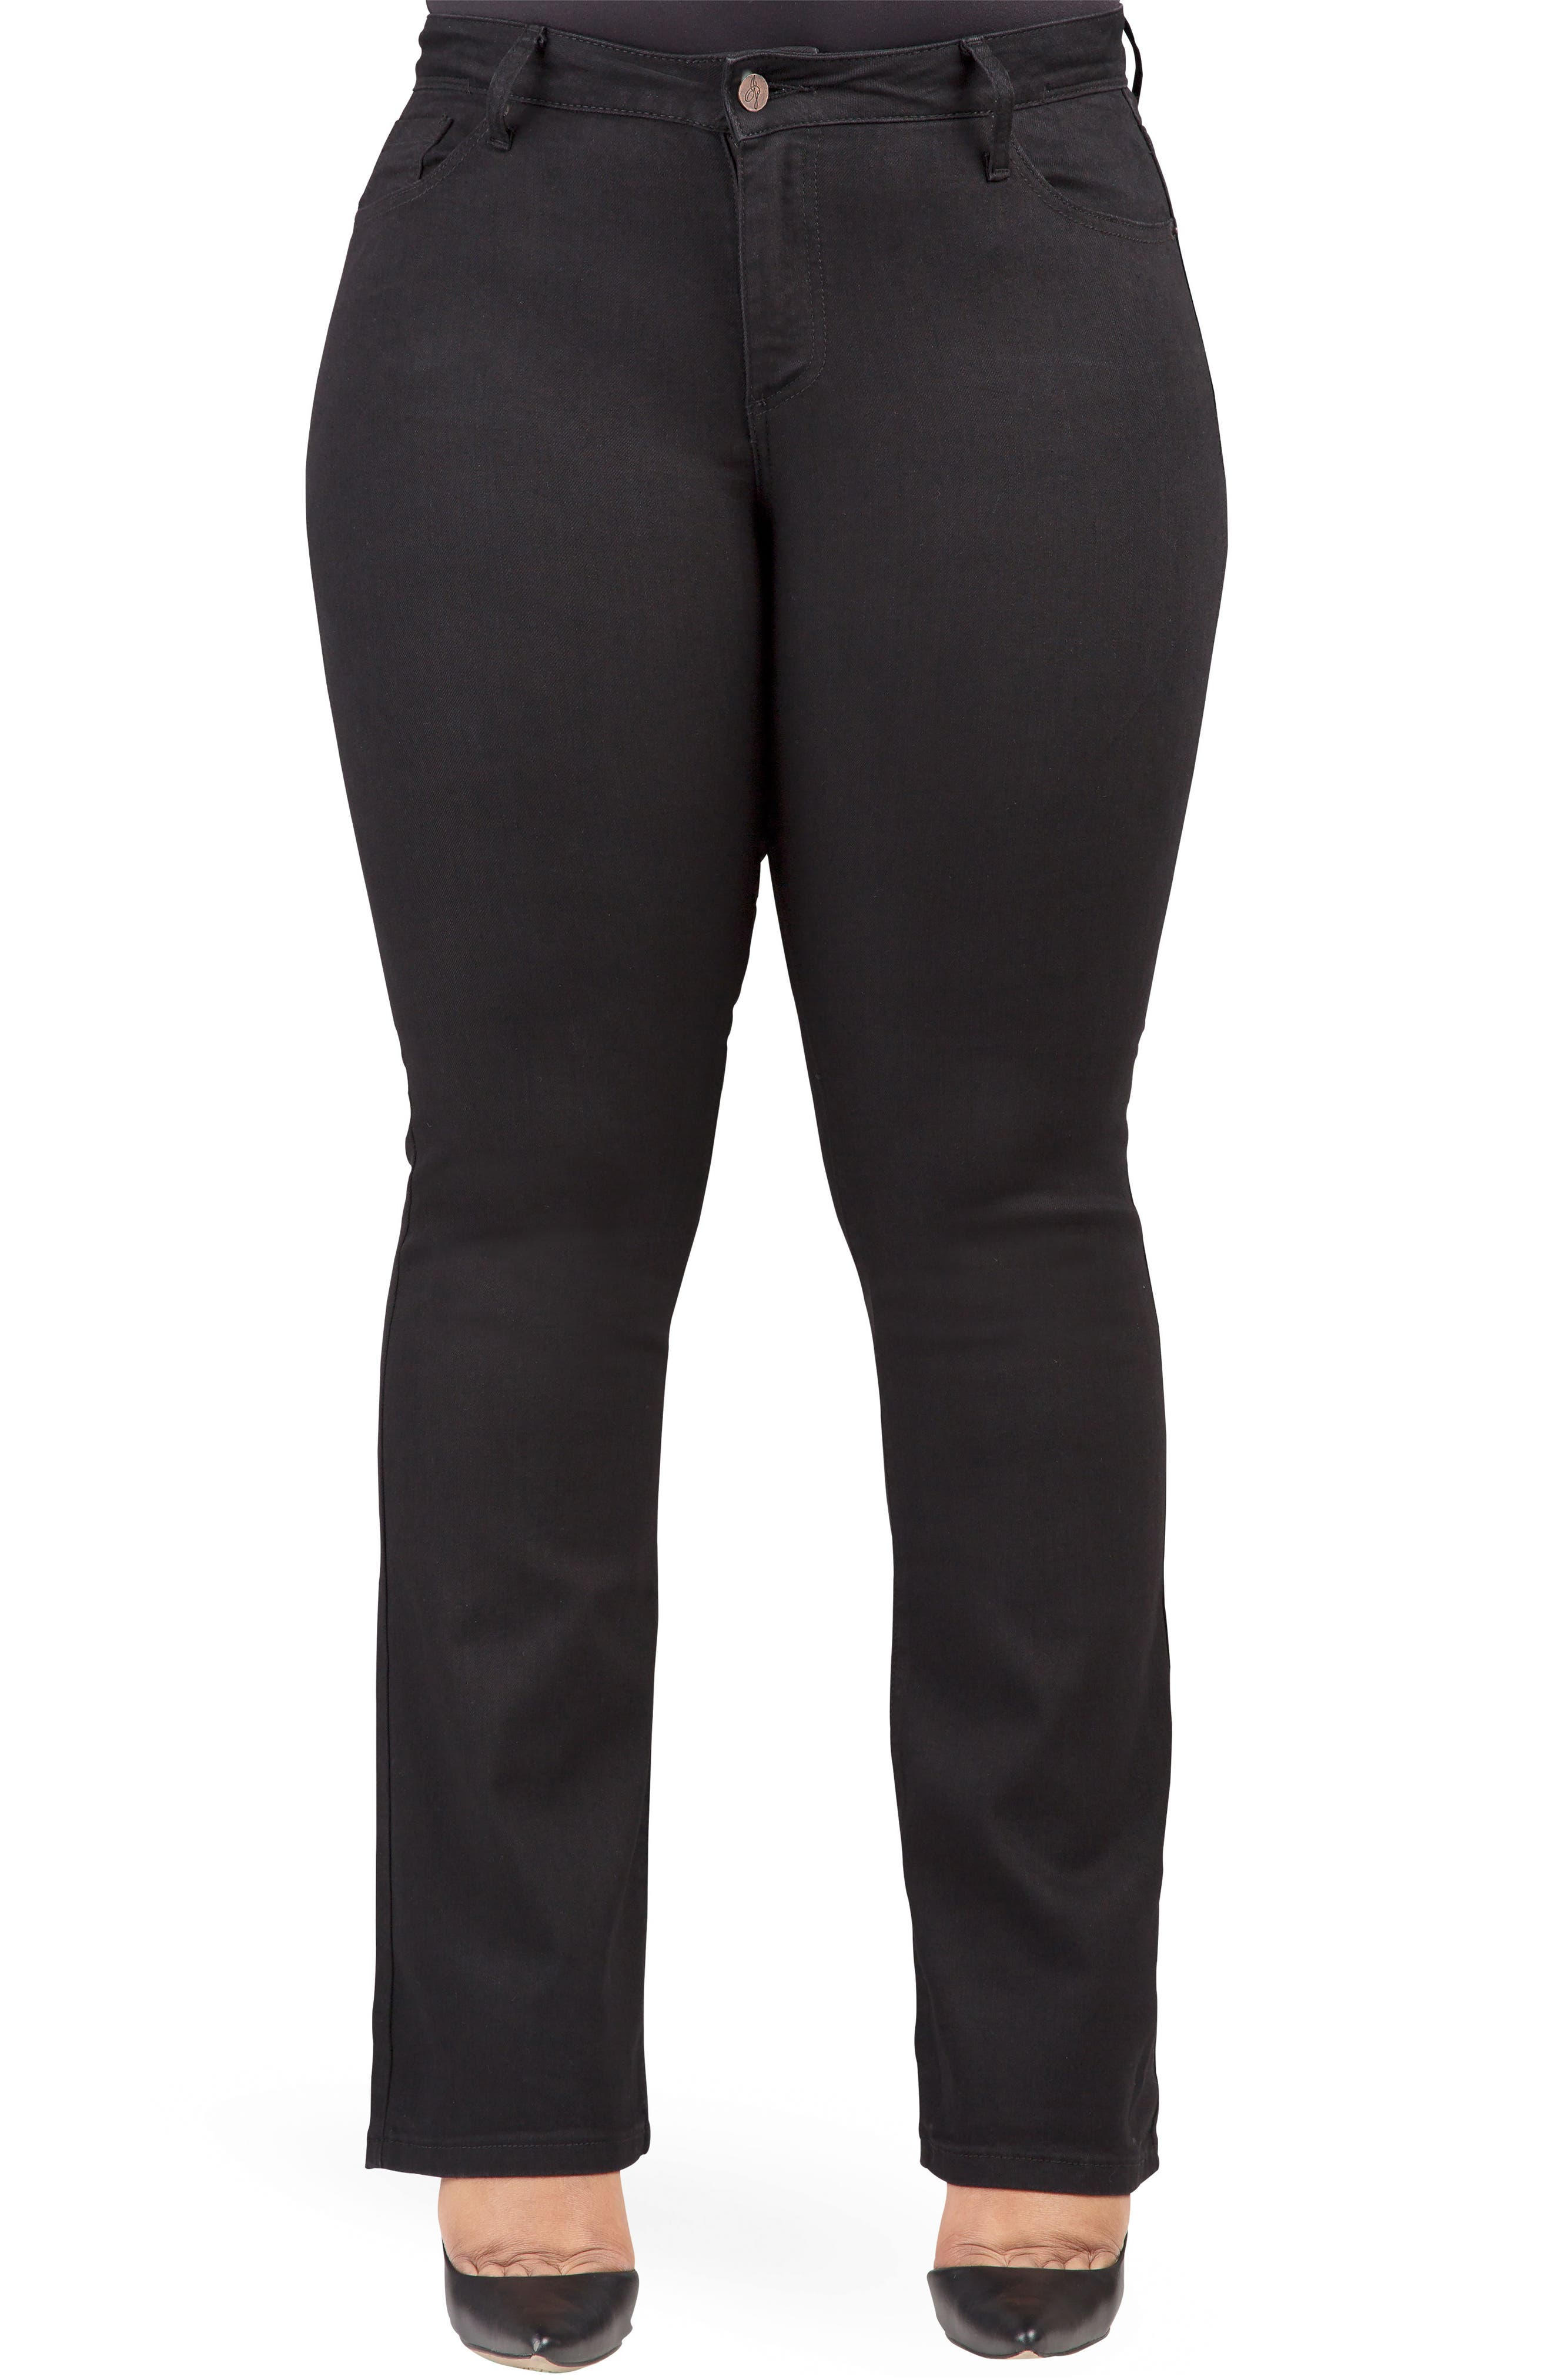 POETIC JUSTICE, Scarlett Slim Bootcut Curvy Fit Jeans, Main thumbnail 1, color, RINSE BLACK